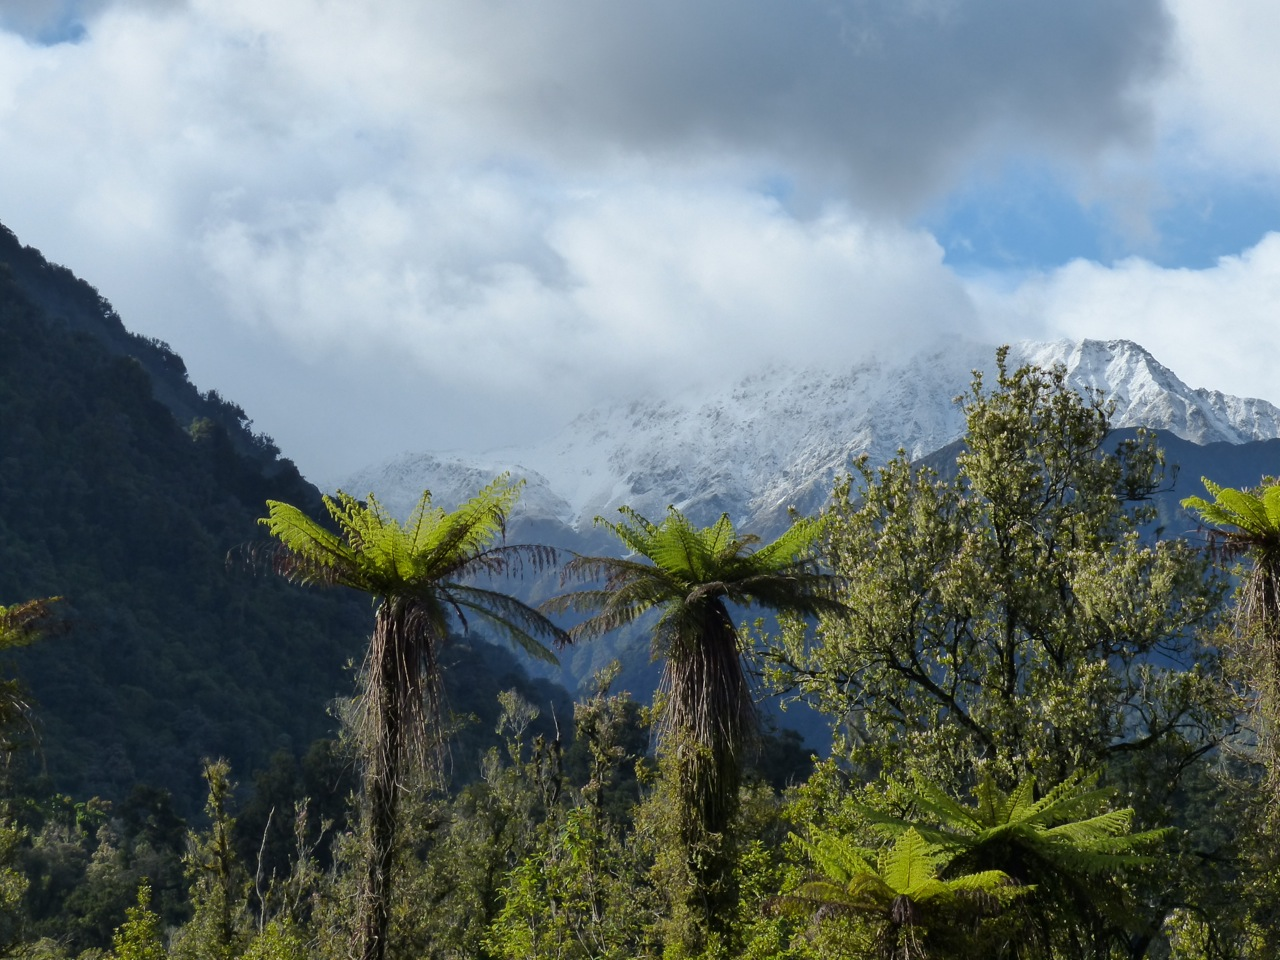 Scene outside my hotel room this morning at Franz Josef